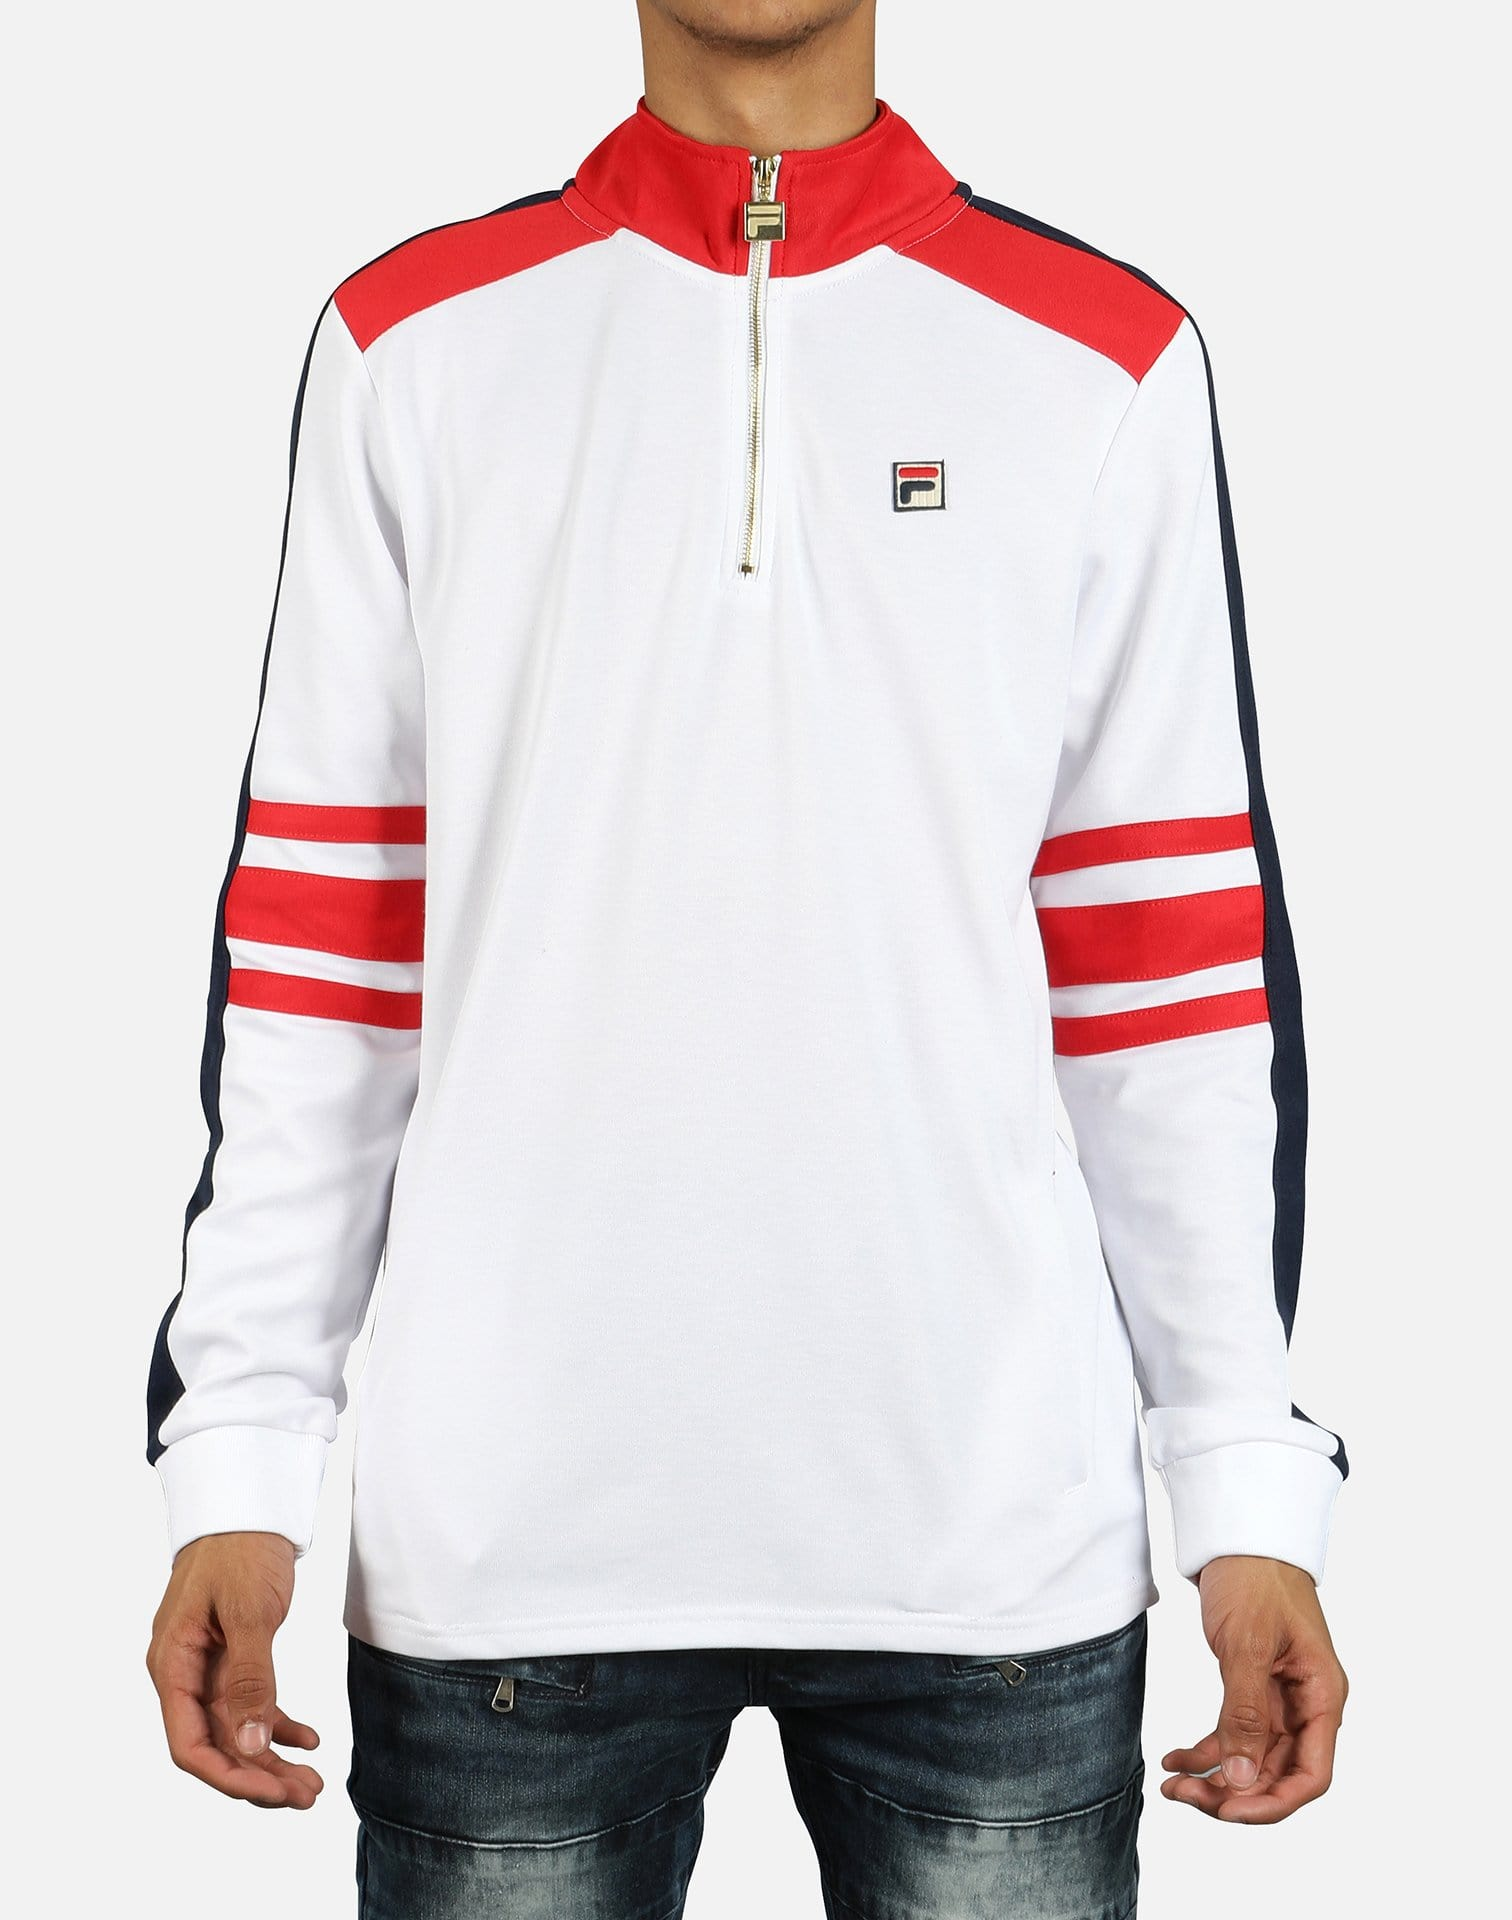 FILA Men's Alastair Vintage1/4 Zip Sweatshirt